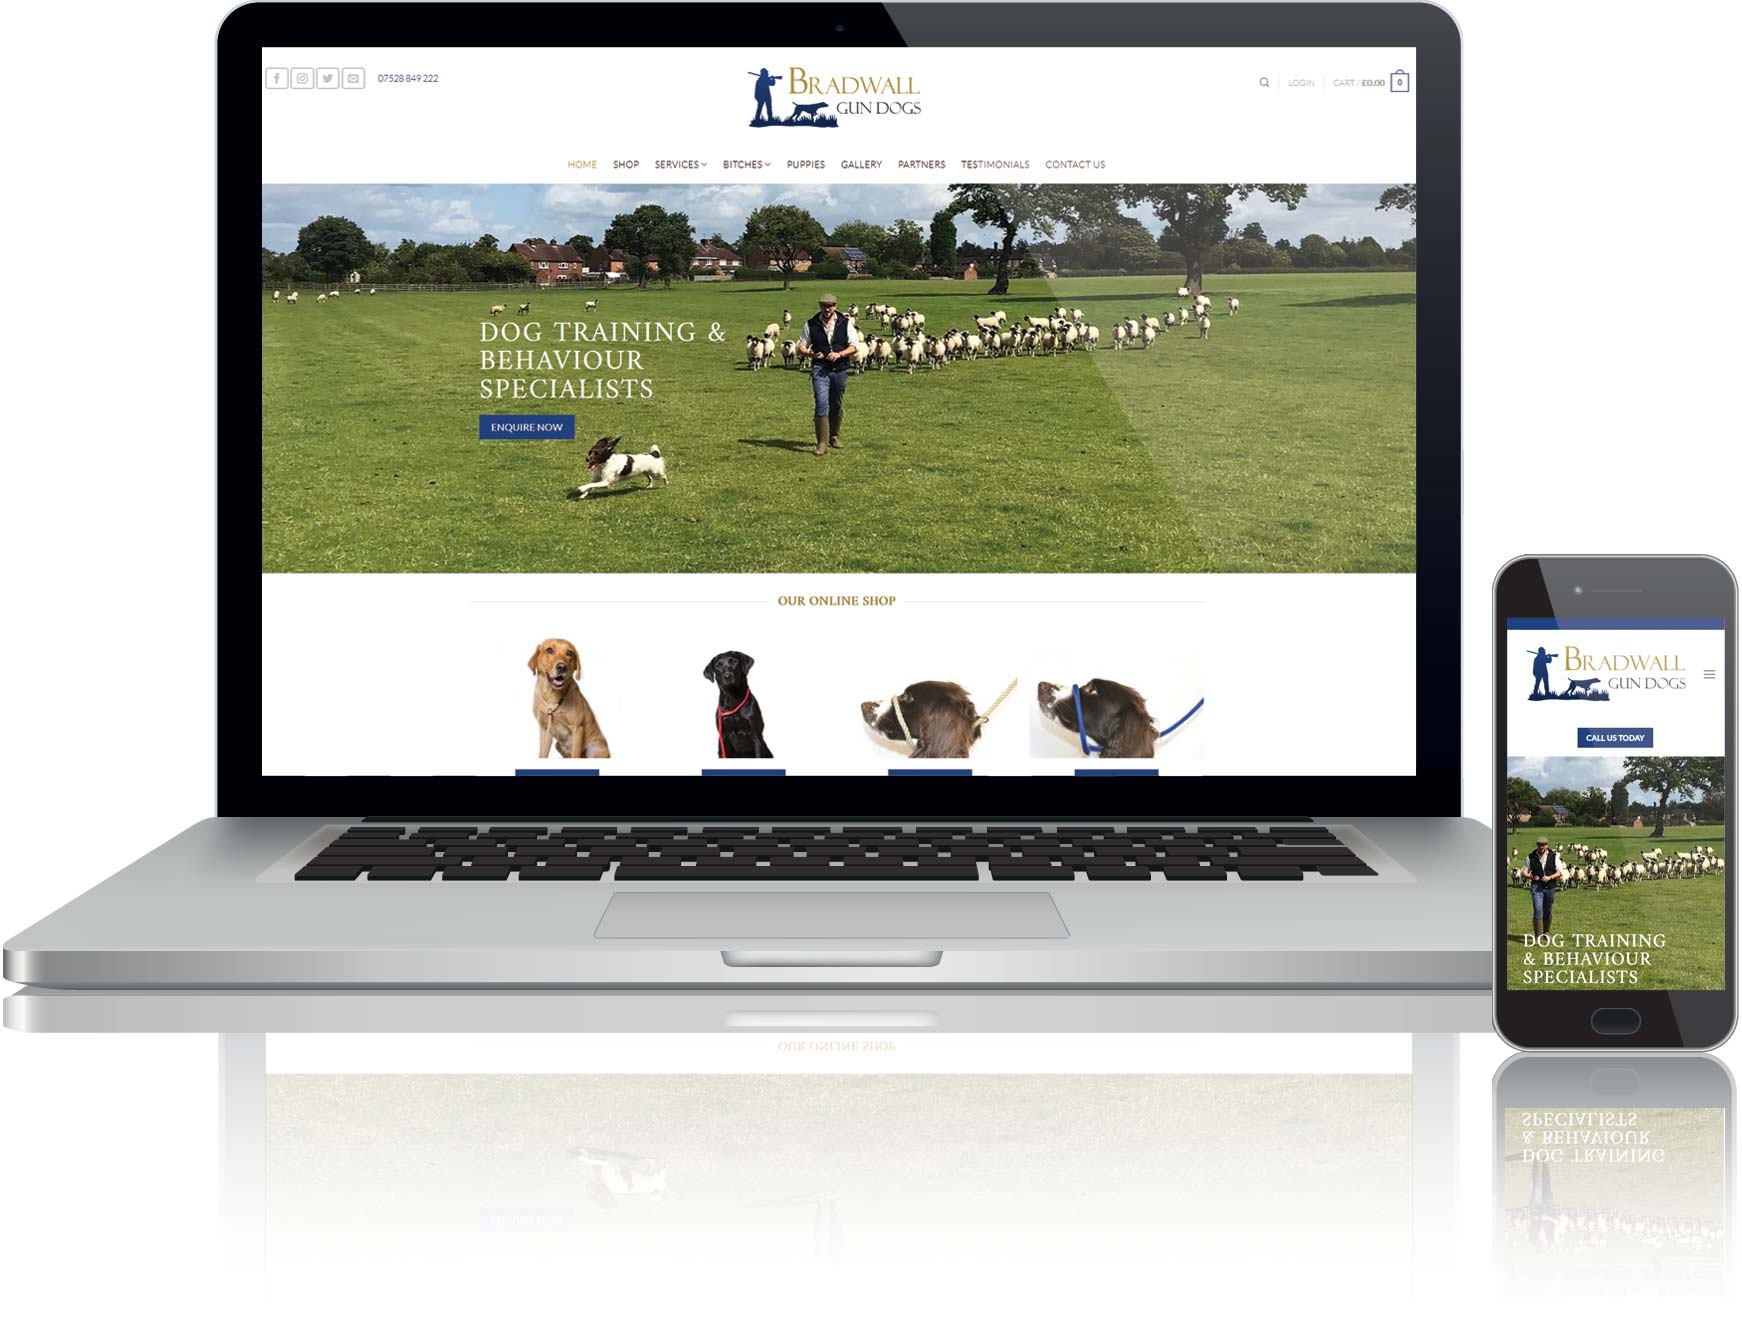 website design for online shop selling dog products